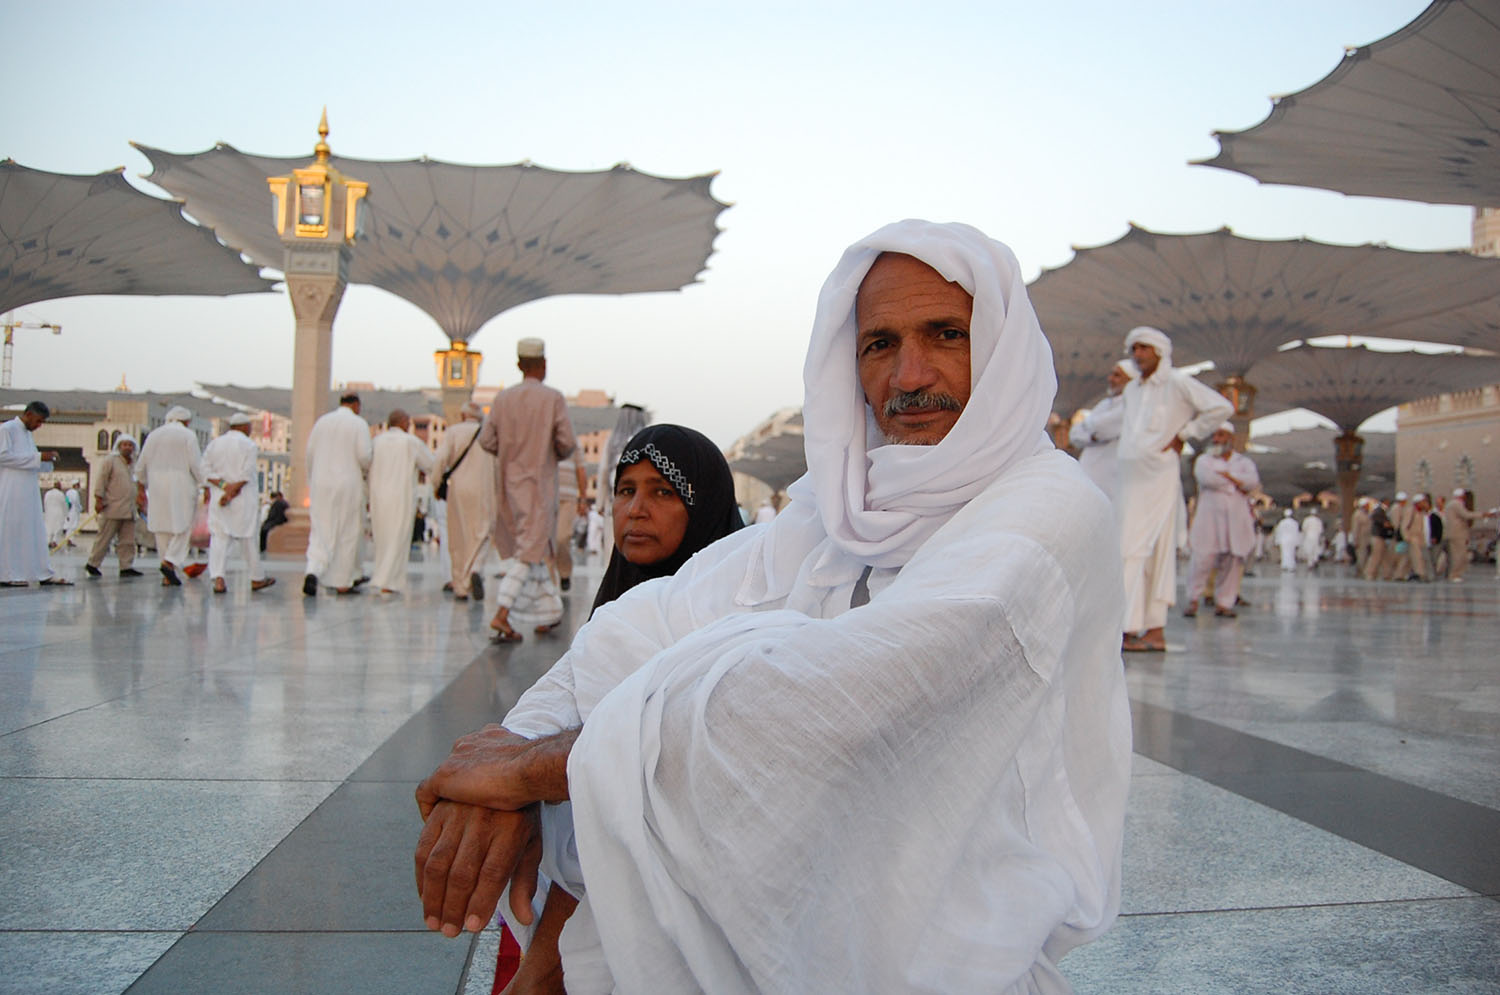 A pilgrim and his wife in the exterior courtyard of the Masjid al-Nabi. Giant retractable umbrellas shield them from the sun.